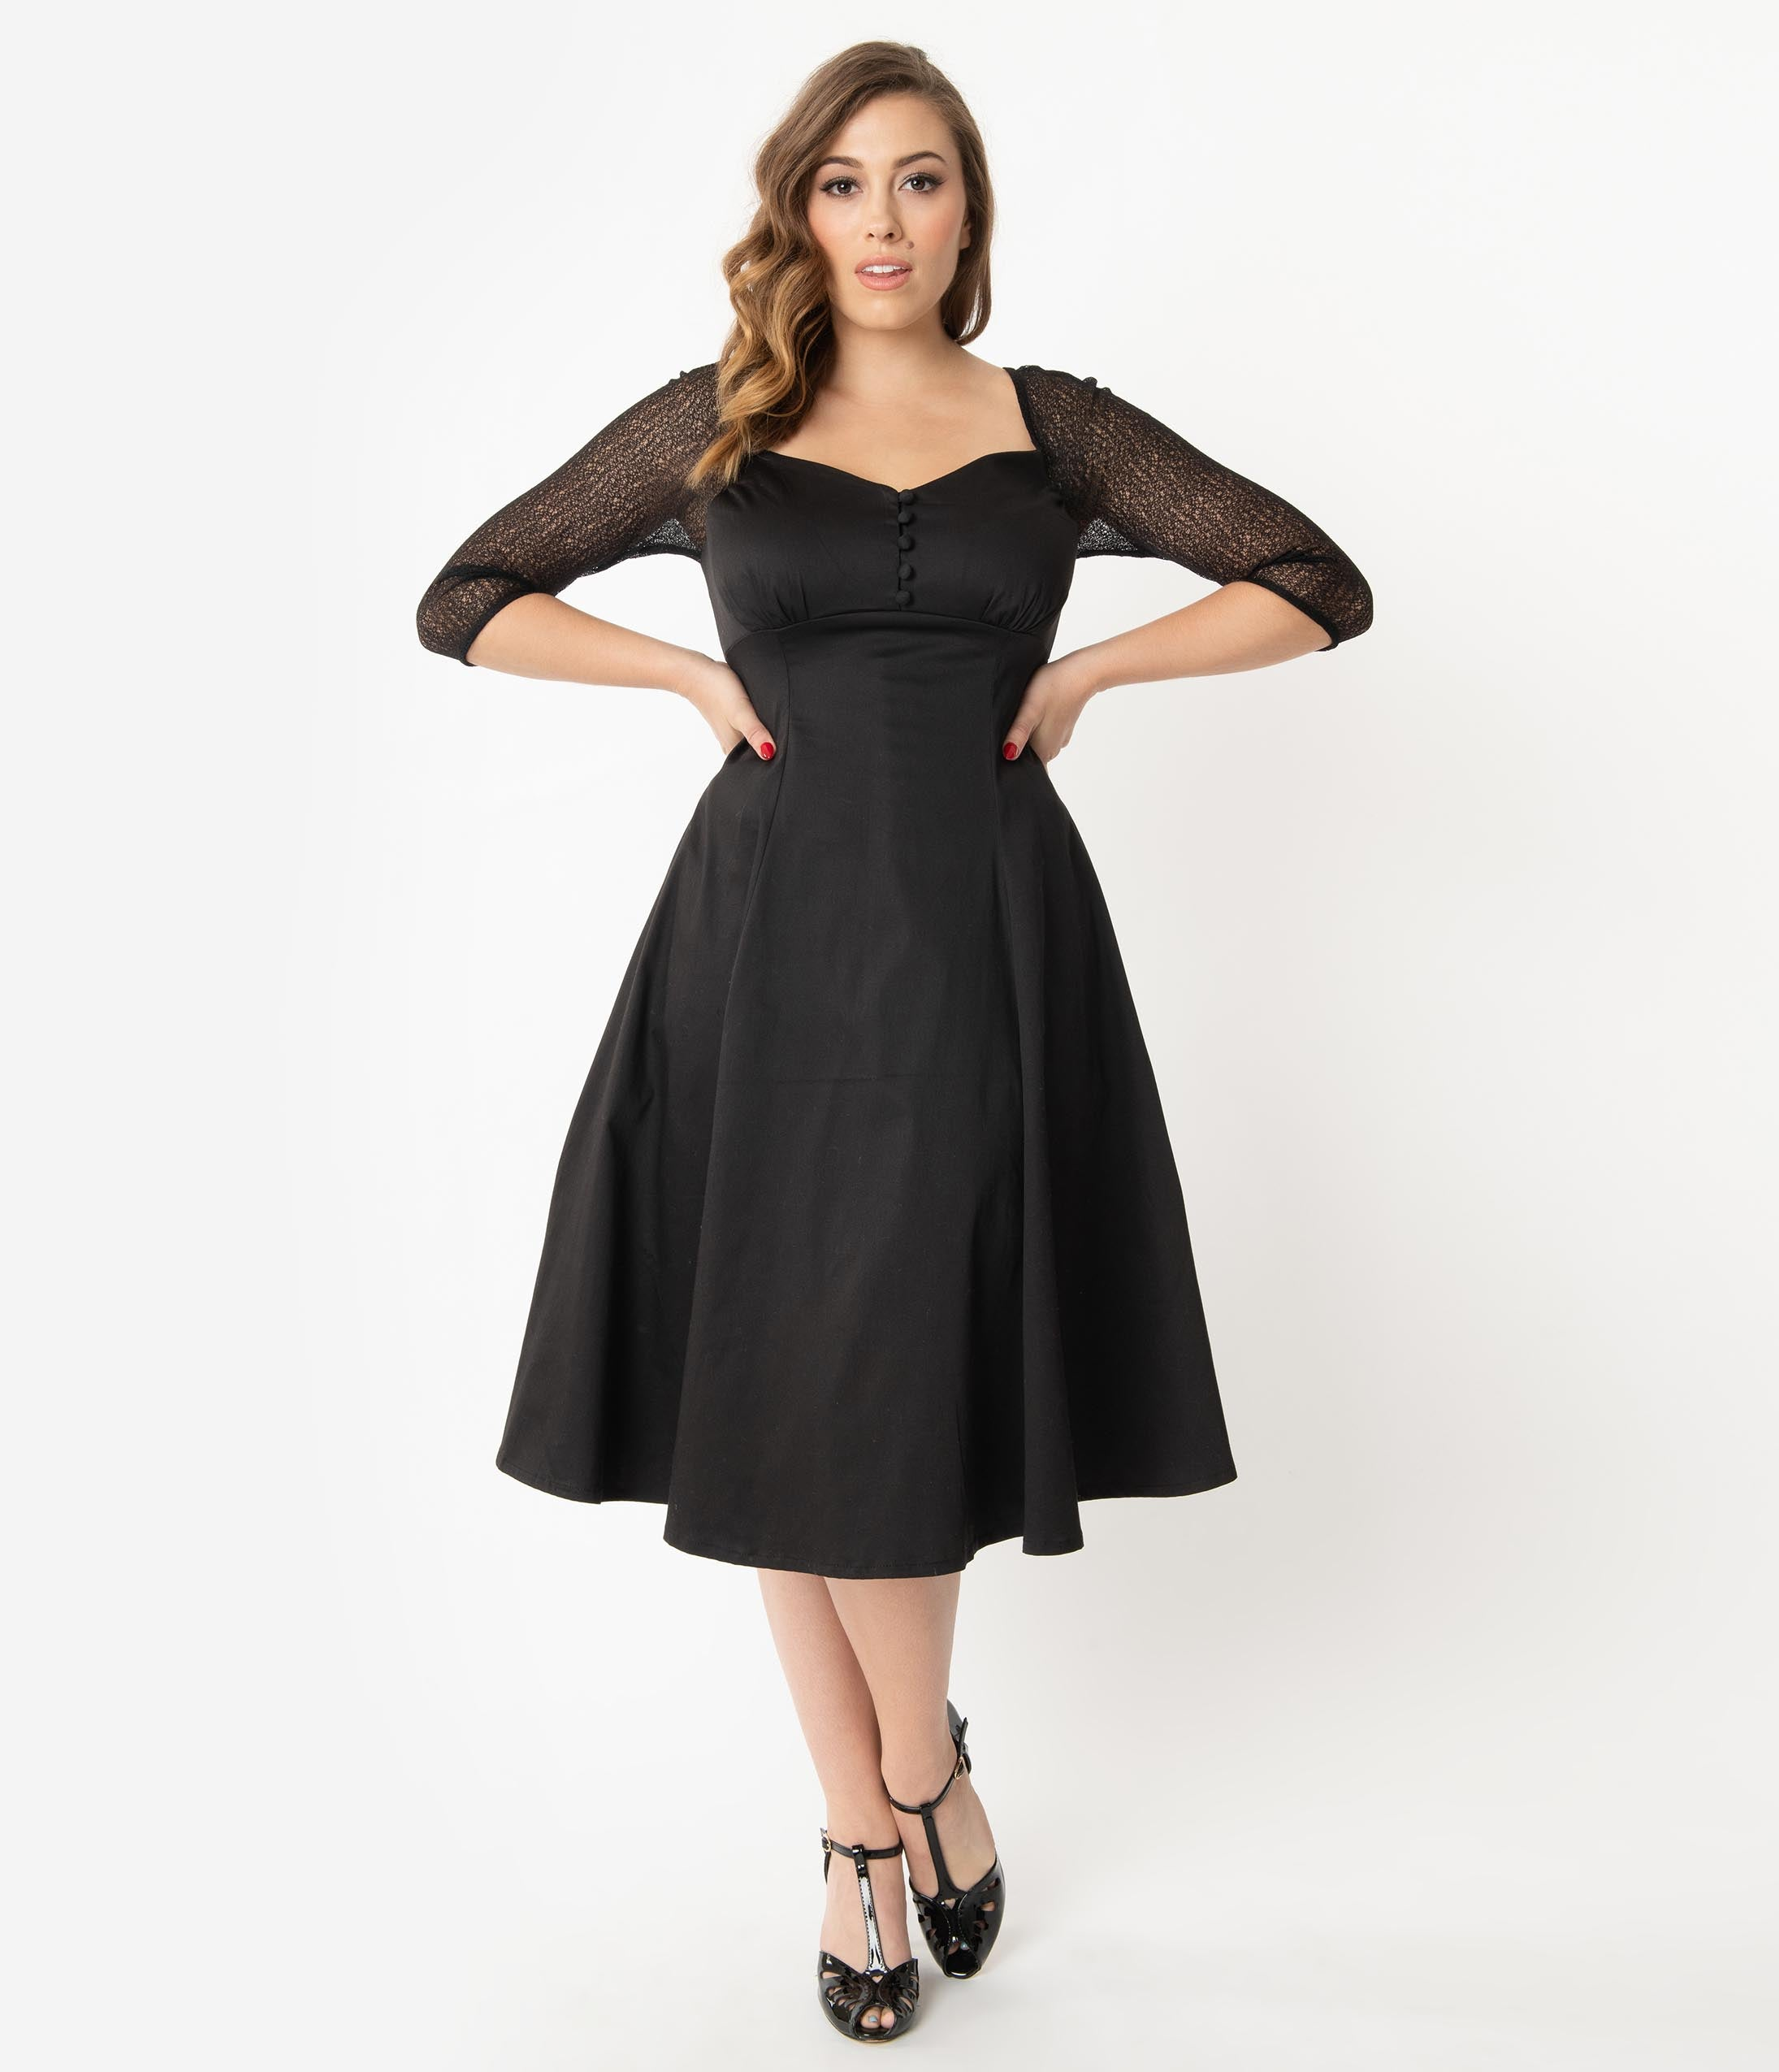 1940s Bridesmaid Dresses, Mother of the Bride Retro Style Black Charline Swing Dress $78.00 AT vintagedancer.com